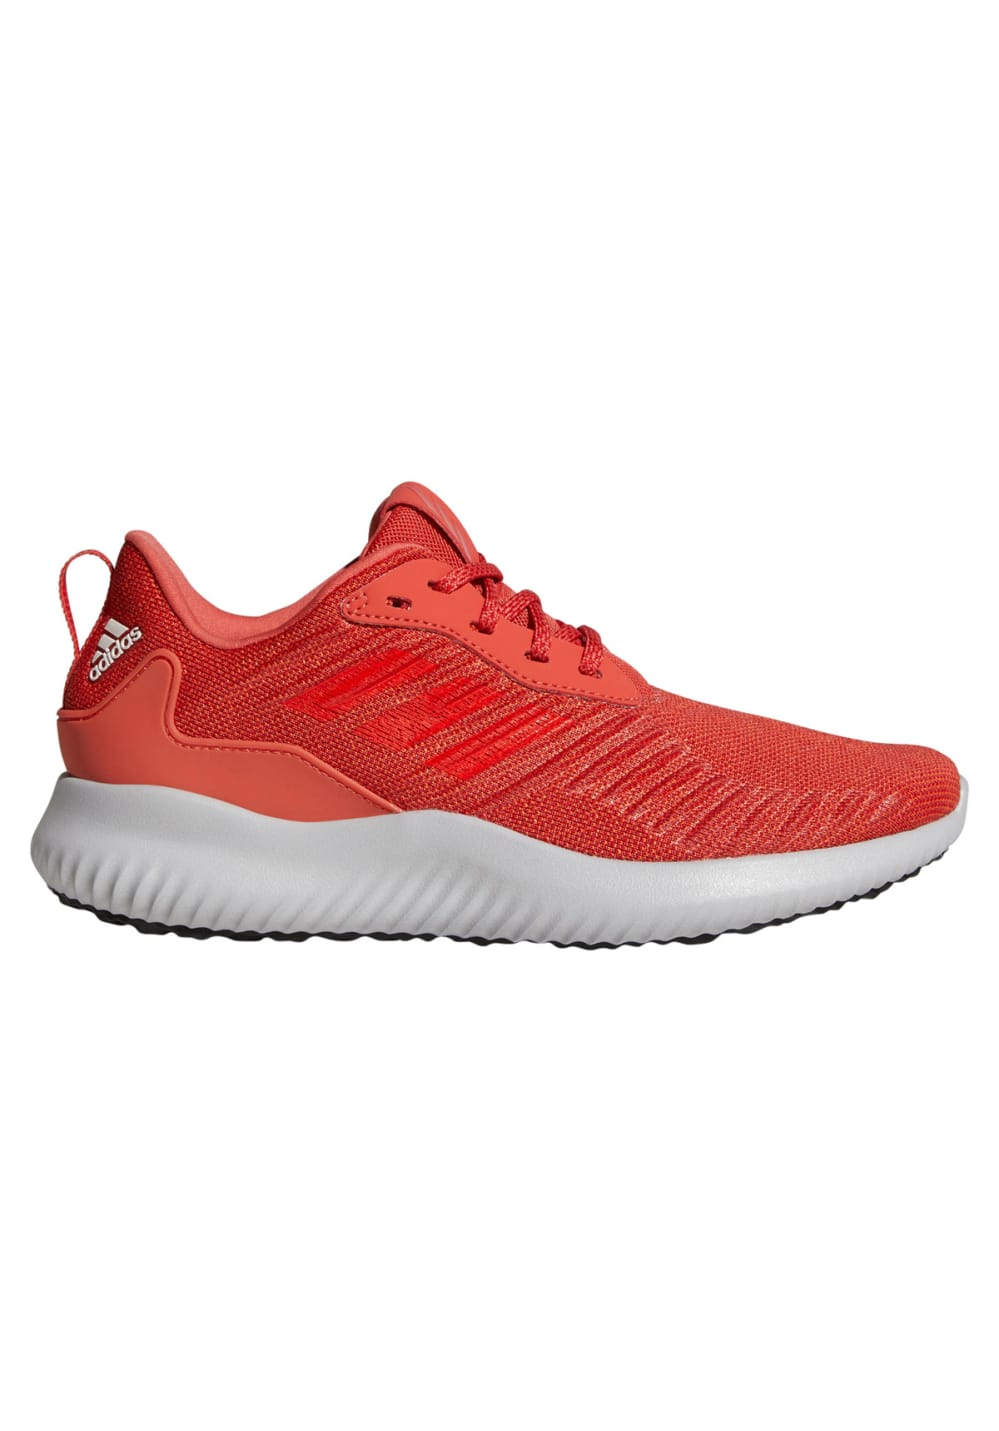 plus récent 4a6ba a6758 adidas Alphabounce Rc - Running shoes for Women - Orange